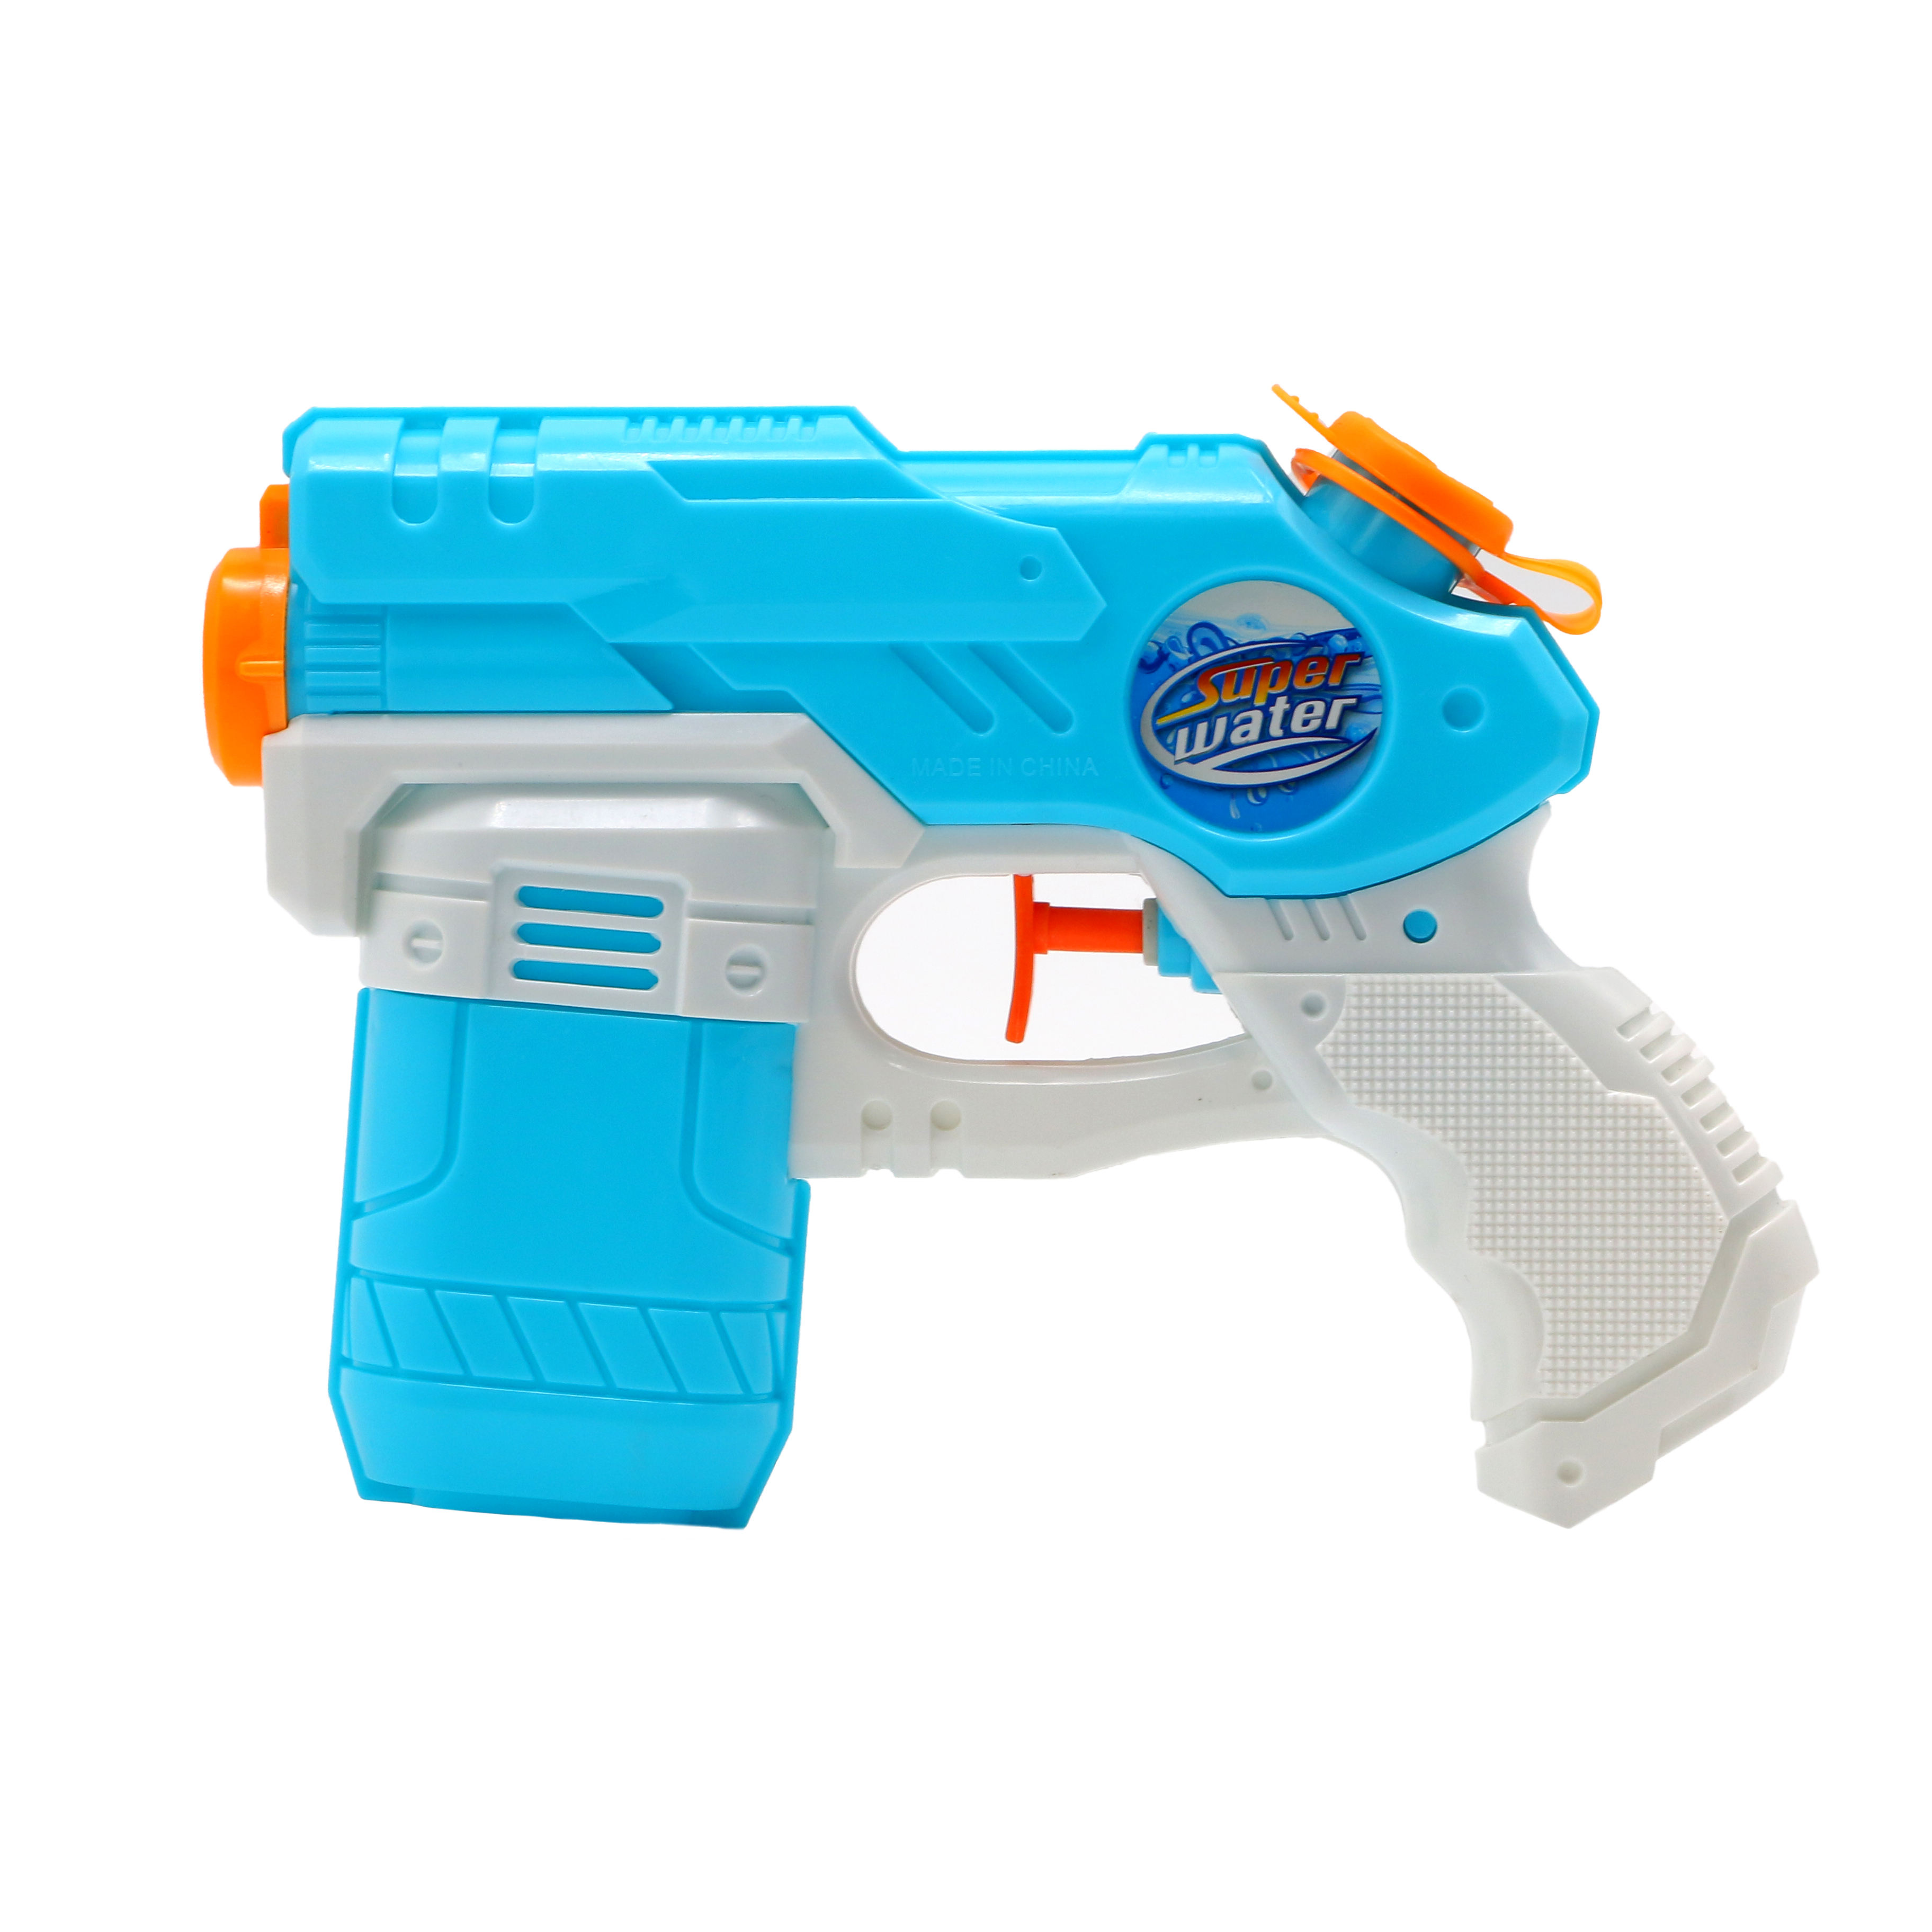 Private Label Zomer Speelgoed Pistolas De Agua <span class=keywords><strong>Waterpistool</strong></span> Speelgoed Plastic Super Soaker Zomer Outdoor Kinderen Speelgoed Mini <span class=keywords><strong>Waterpistool</strong></span> voor Kid